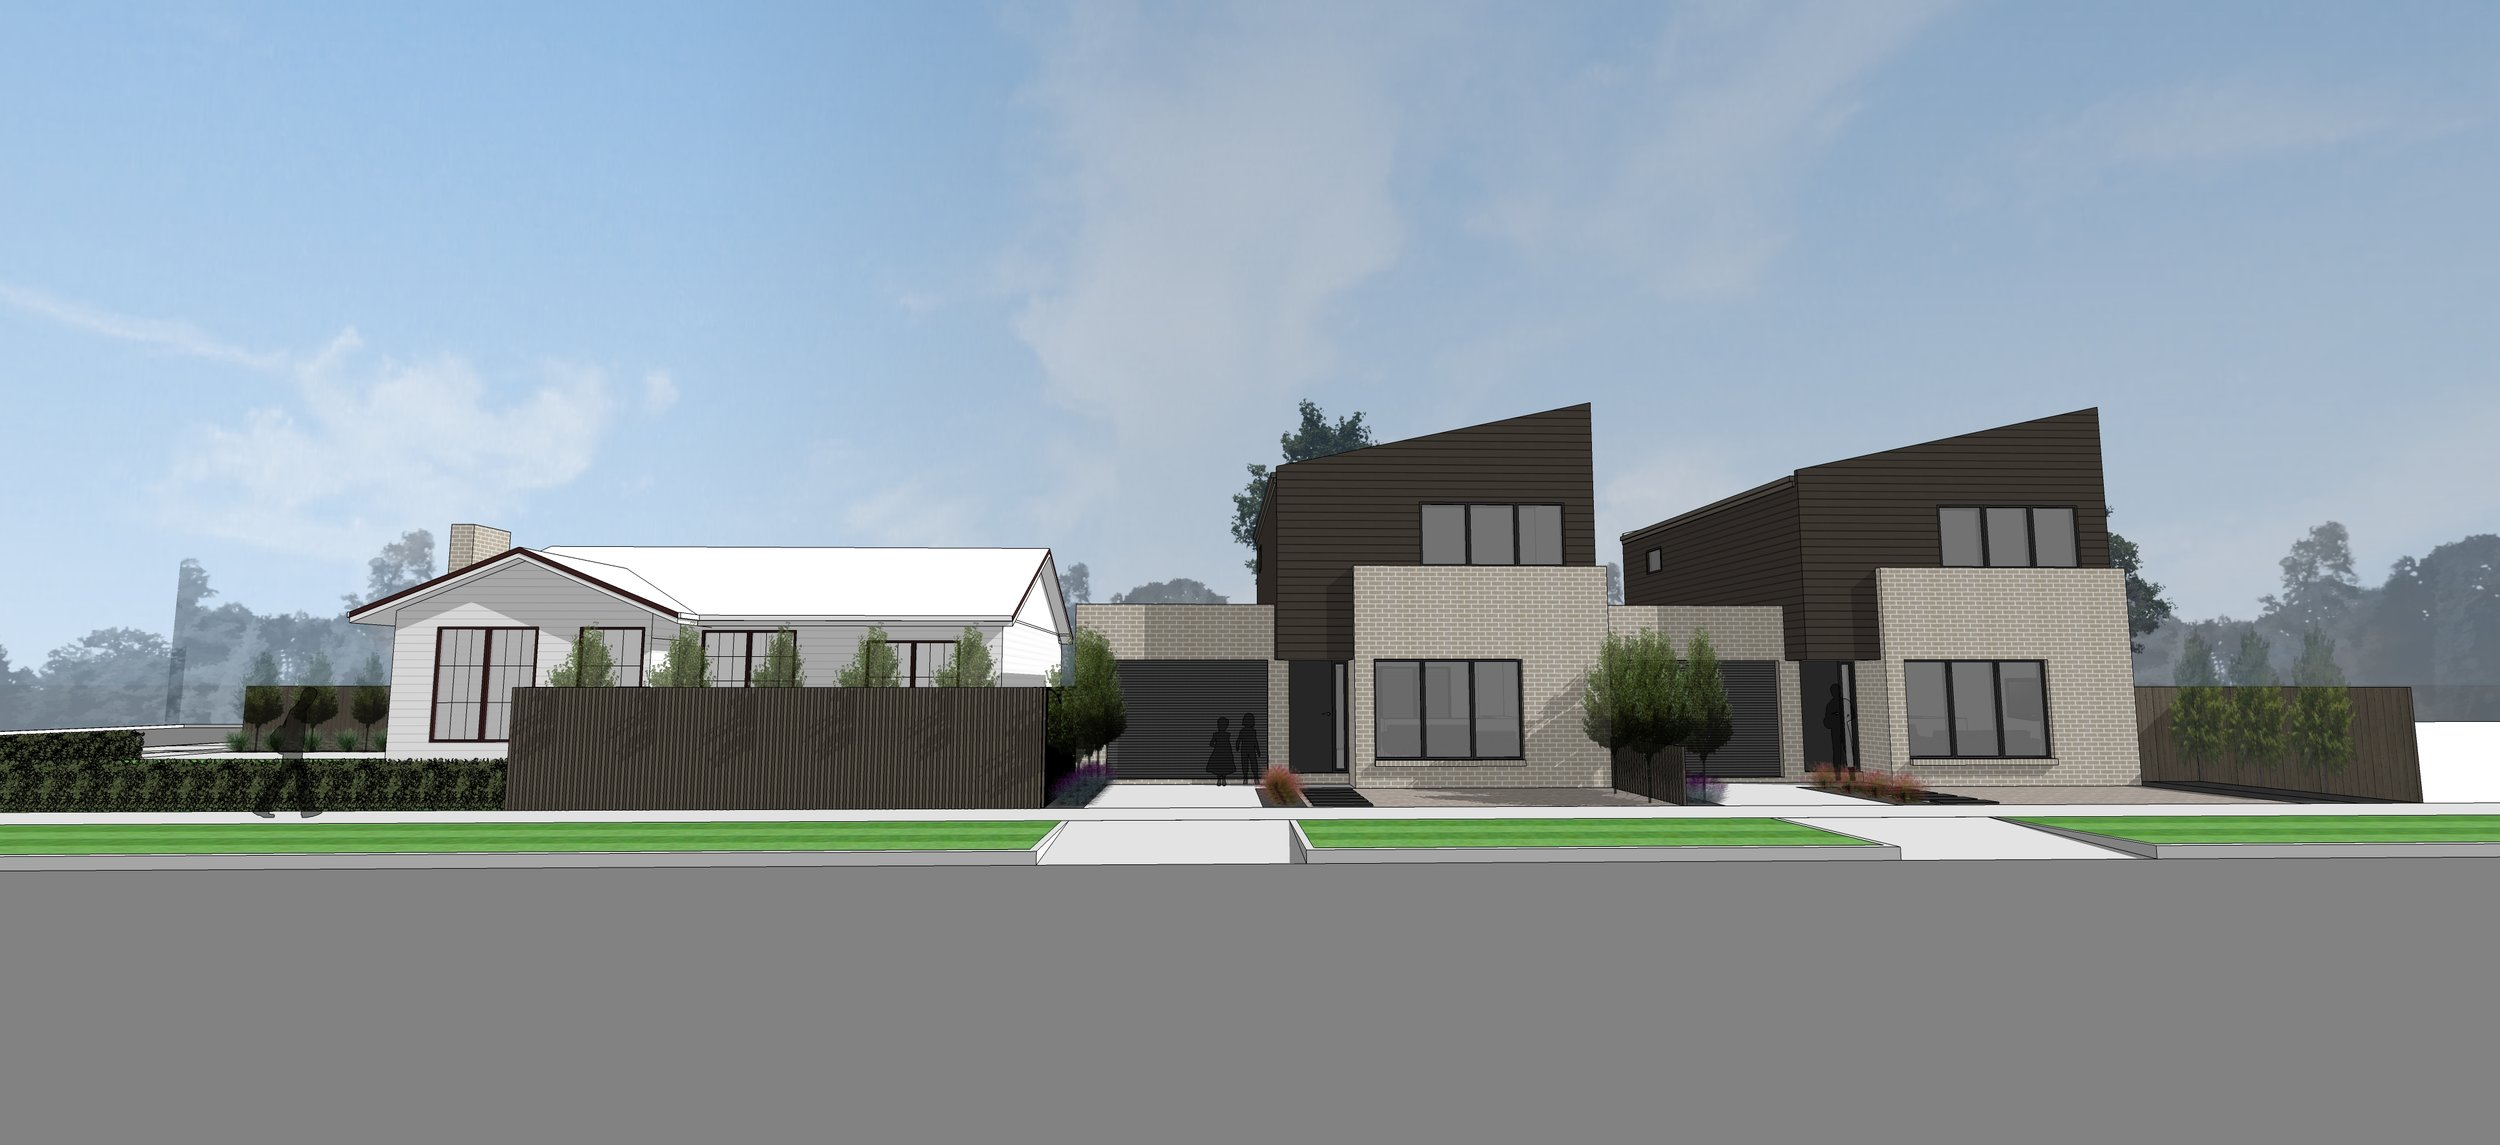 Concept - Planning Permit Approved…